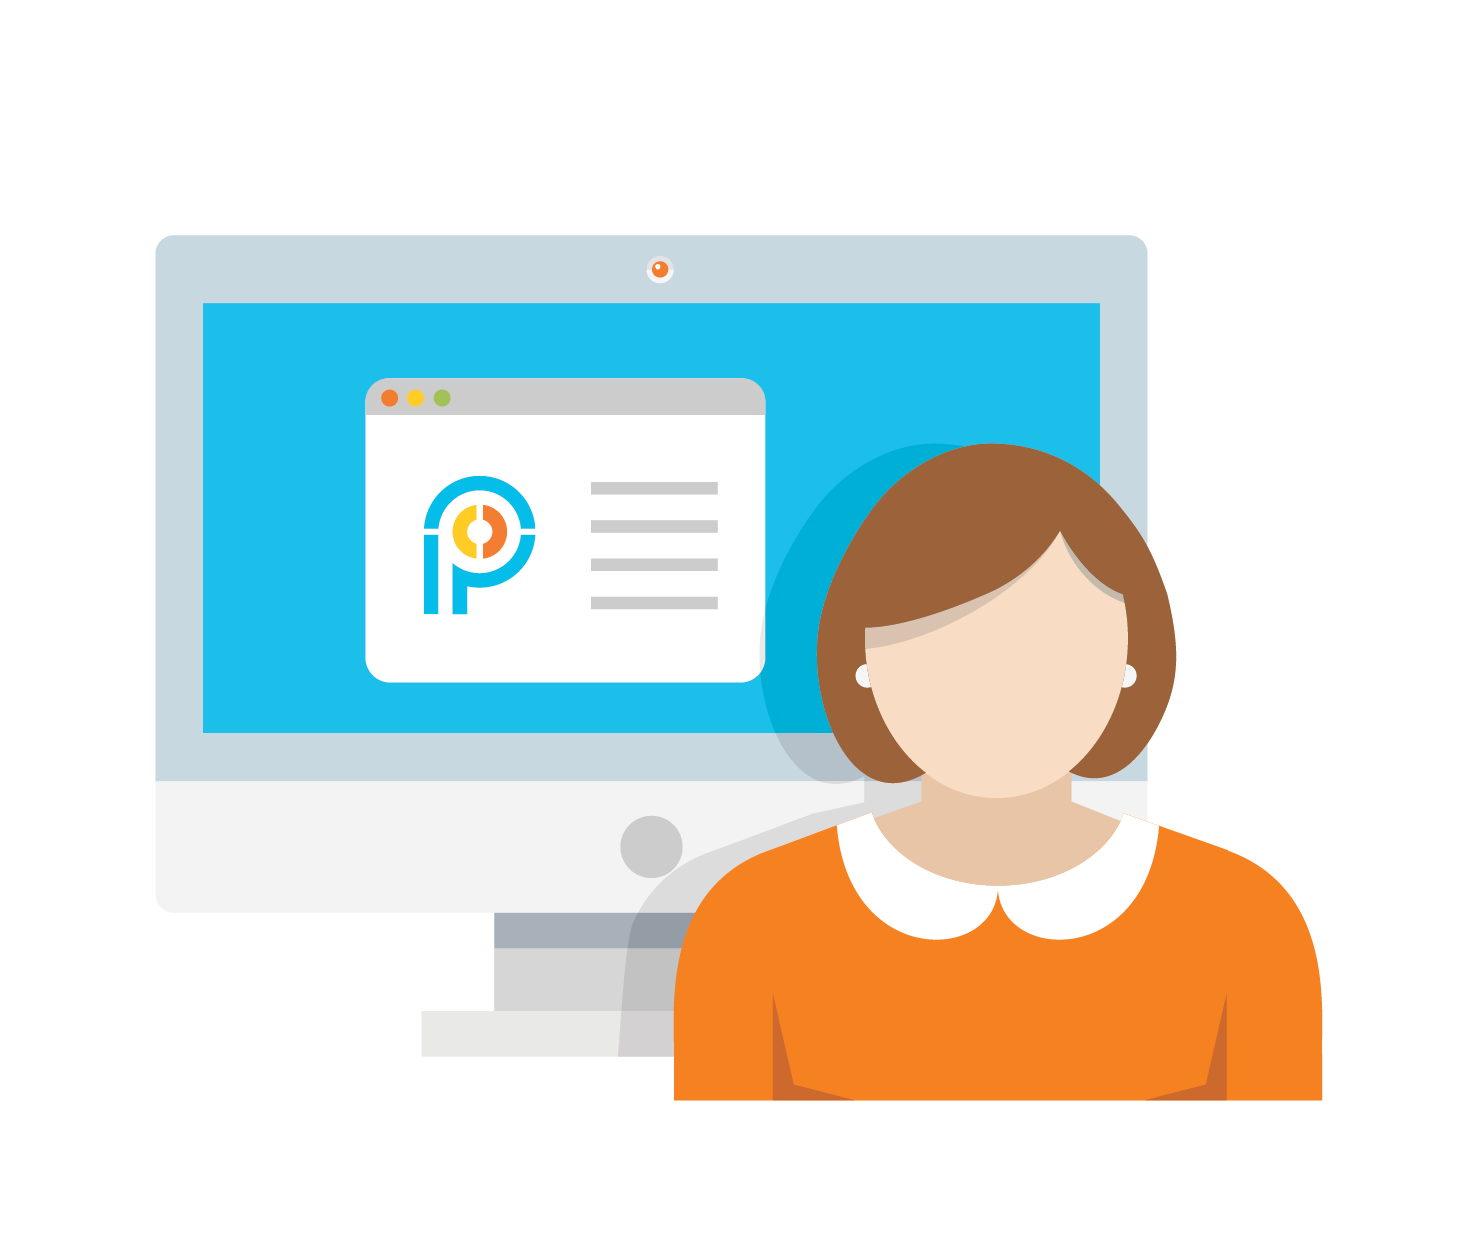 Icon of lady in front of a screen with Proximity Learning logo and a browser window open